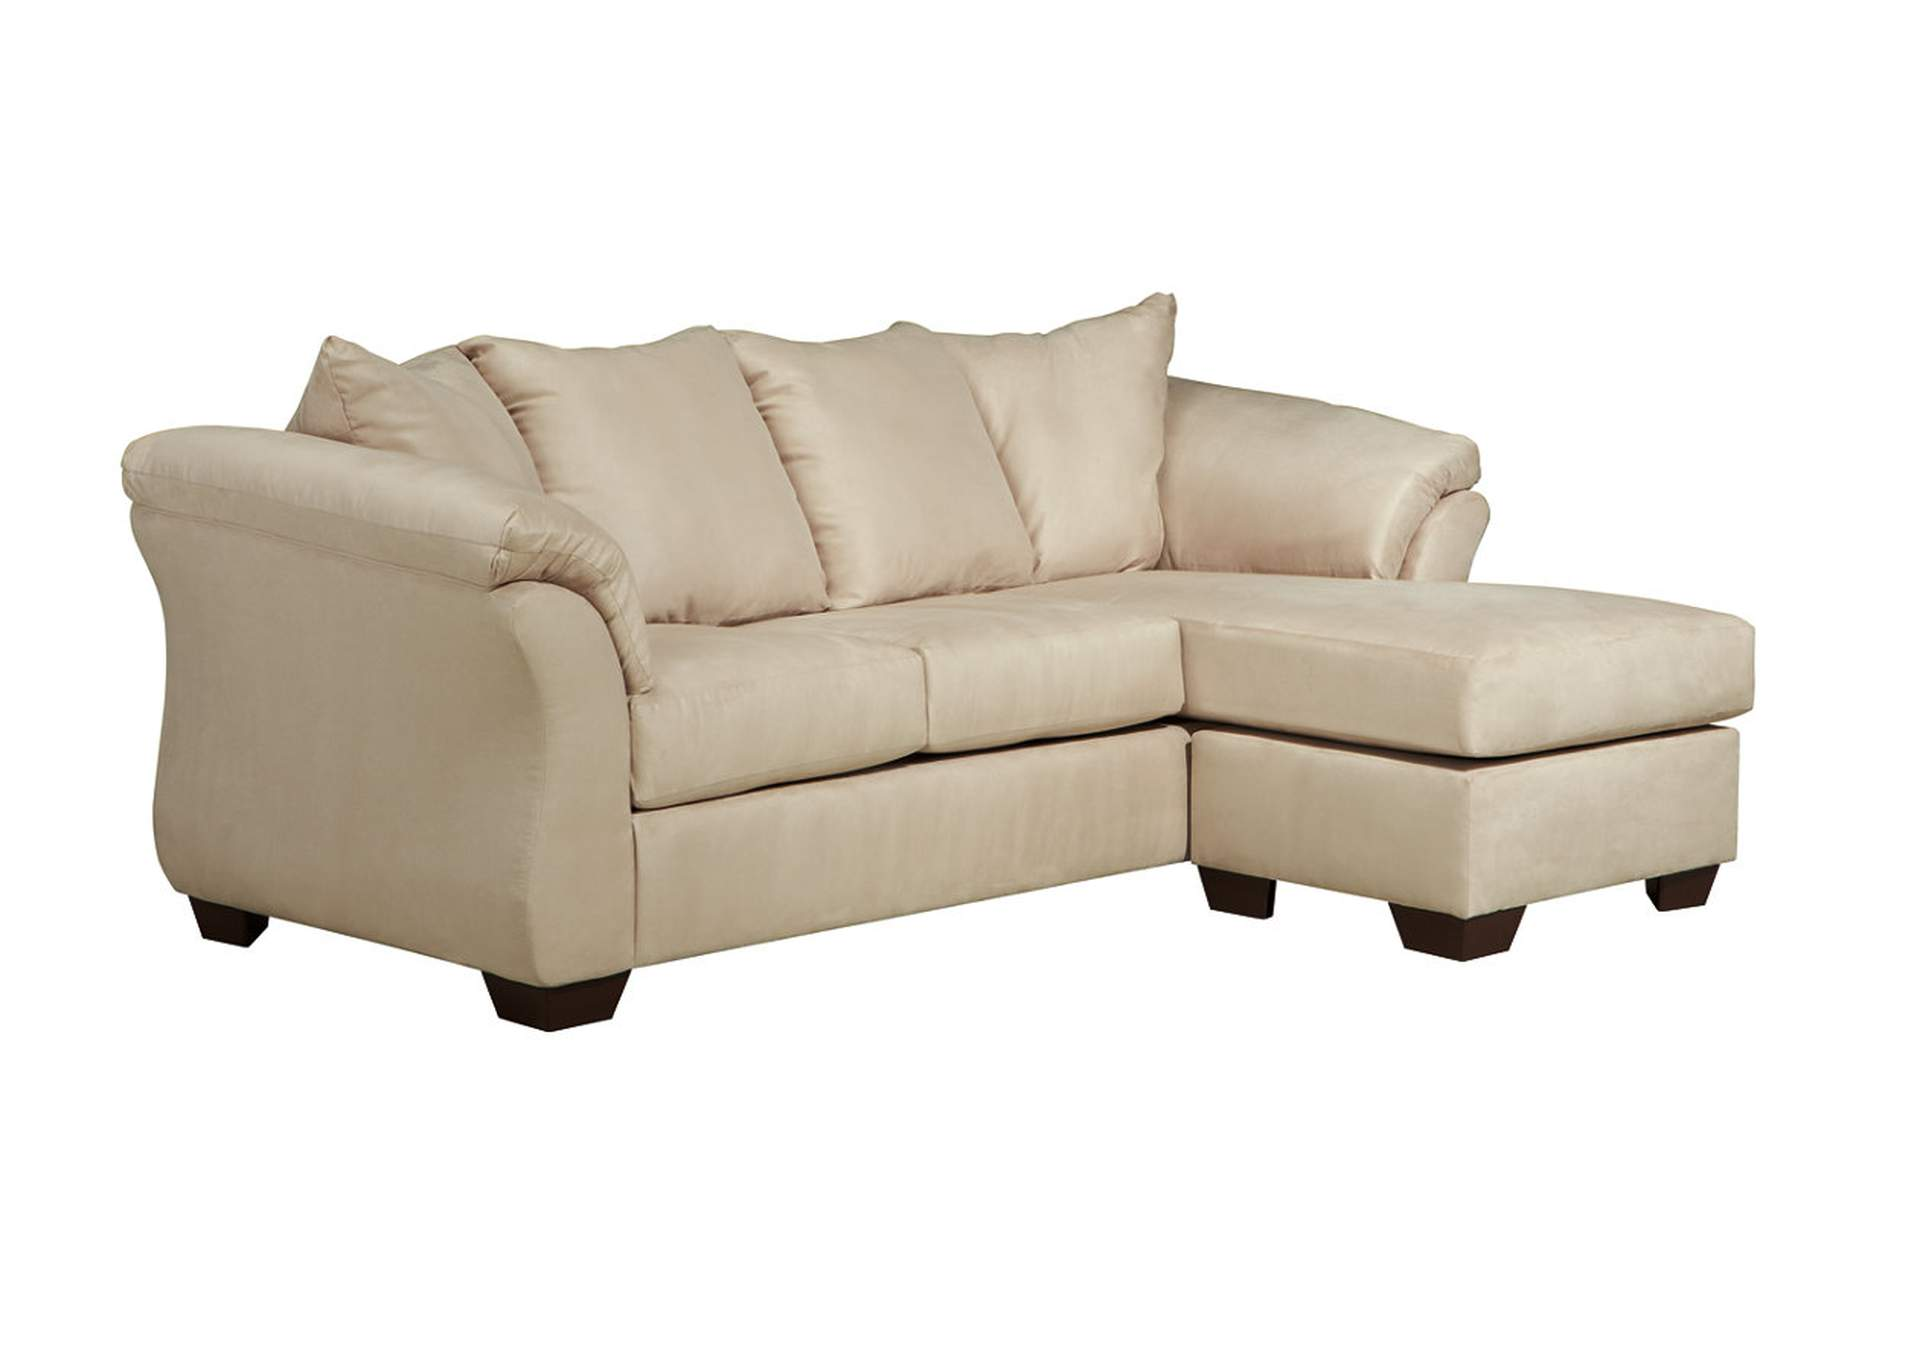 chaise living room furniture ivan smith darcy sofa chaise 15404